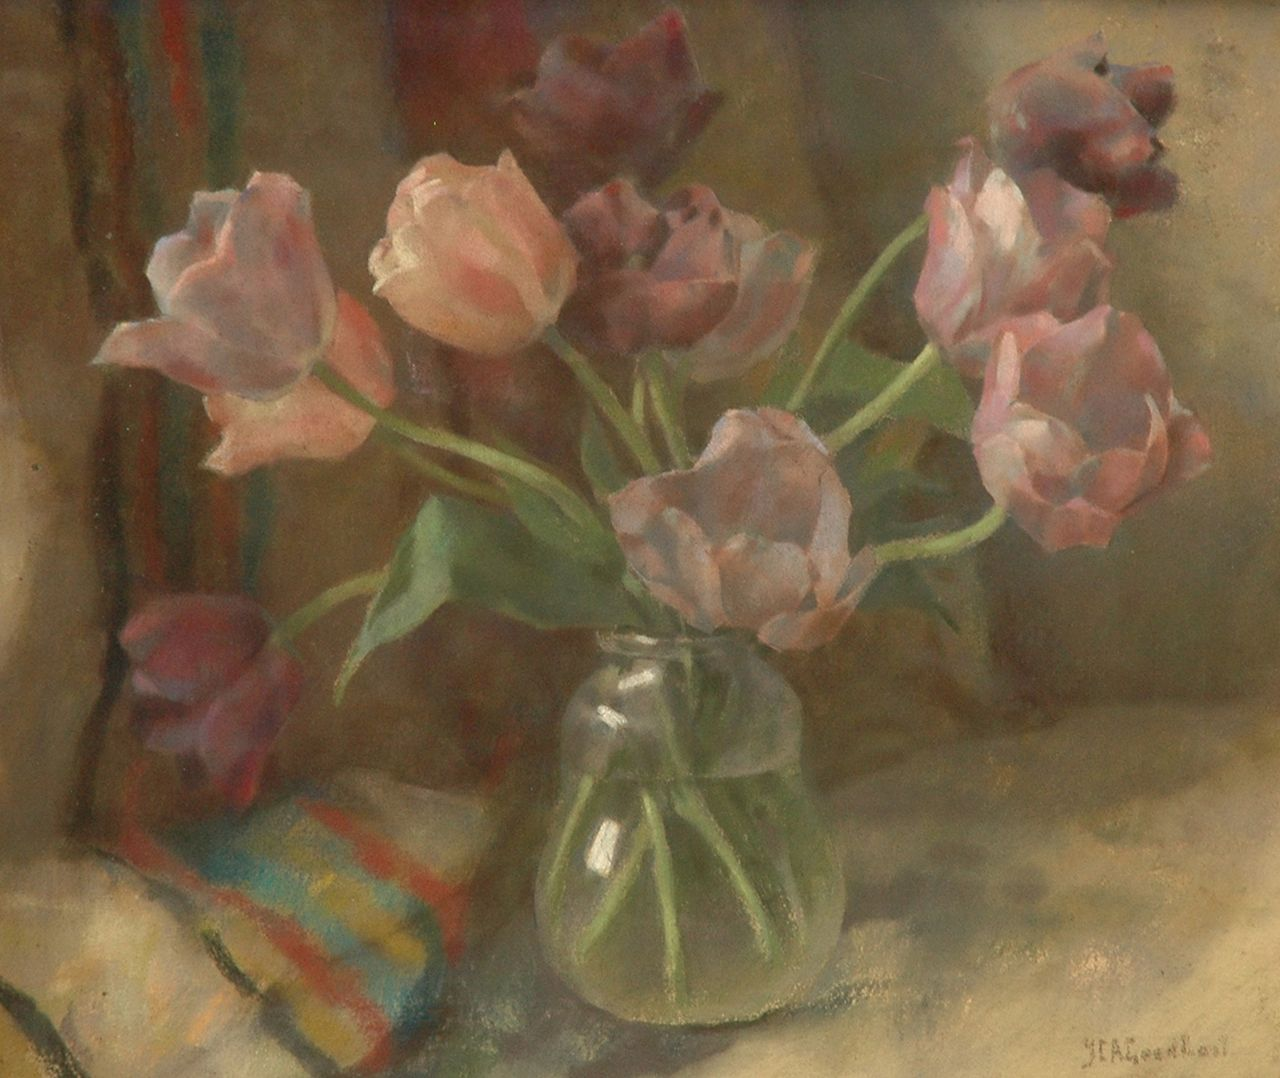 Goedhart J.C.A.  | 'Jan' Catharinus Adriaan Goedhart, Tulips, pastel on canvas 50.0 x 60.0 cm, signed l.r.